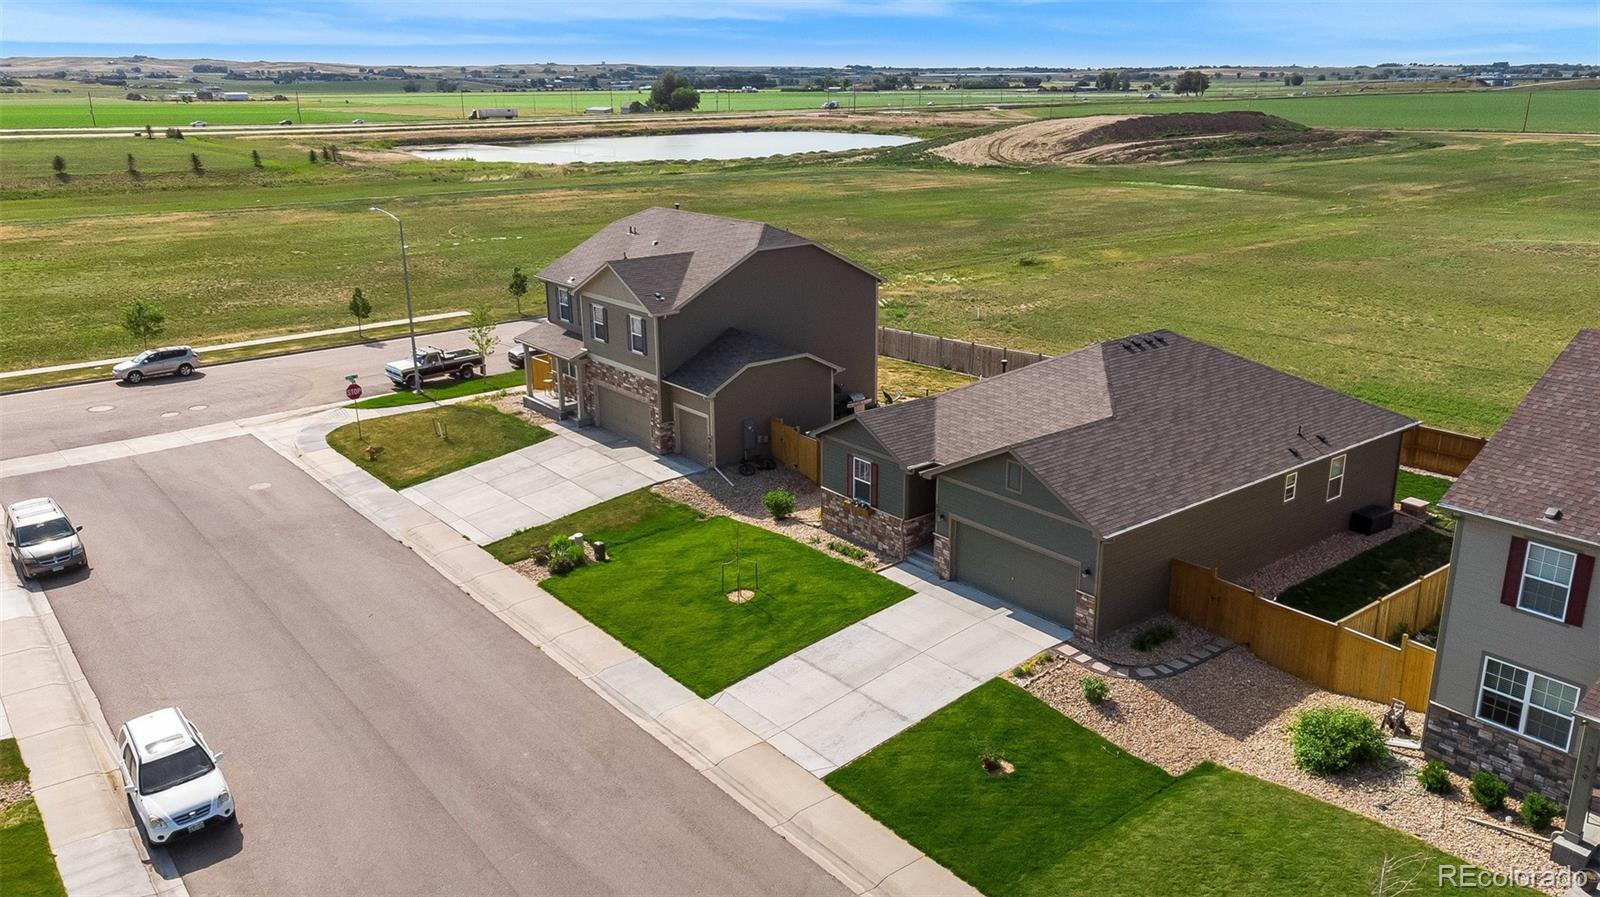 MLS# 2622320 - 3 - 3771 Torch Lily Street, Wellington, CO 80549